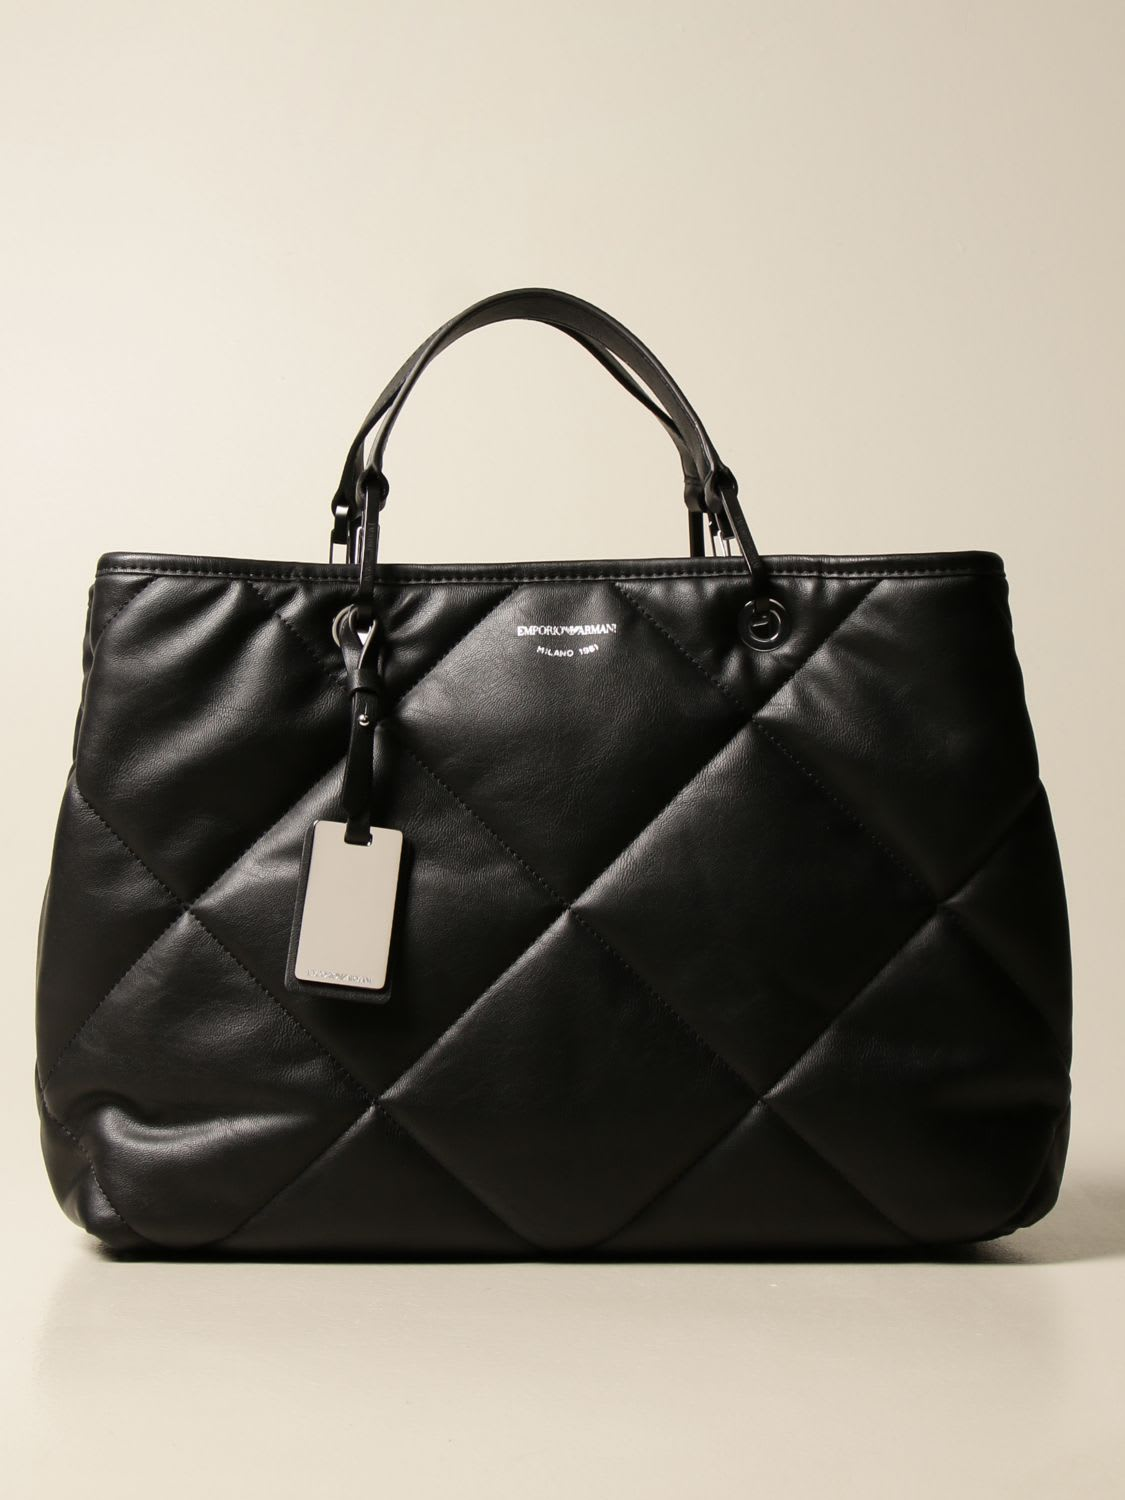 Emporio Armani Handbag Padded Emporio Armani Bag In Quilted Leather